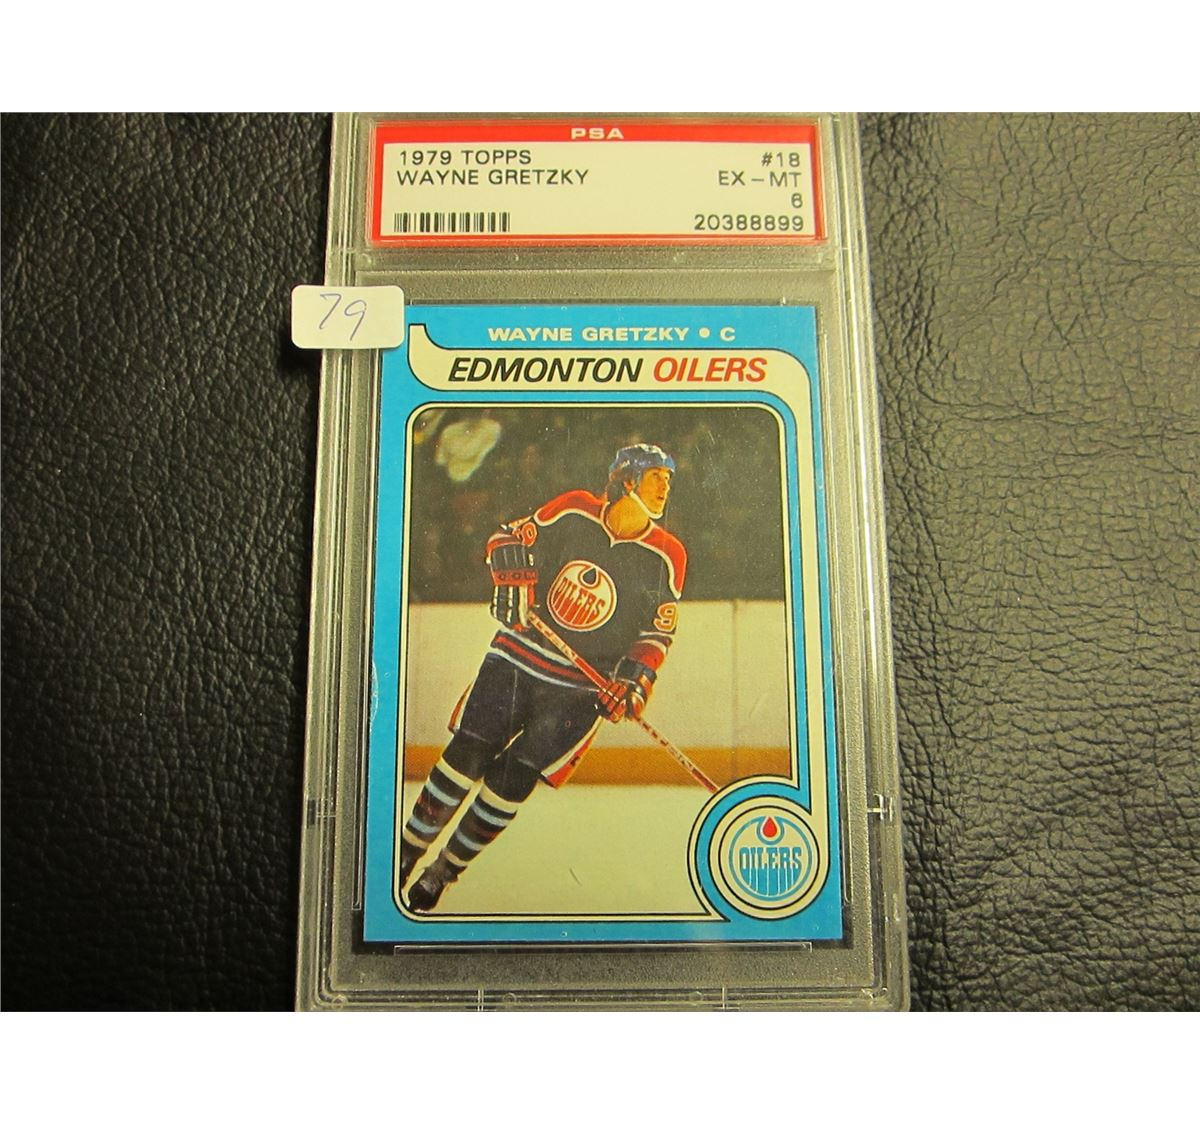 1979 80 Wayne Gretzky Rookie Card Graded 6 Ex Mt Topps